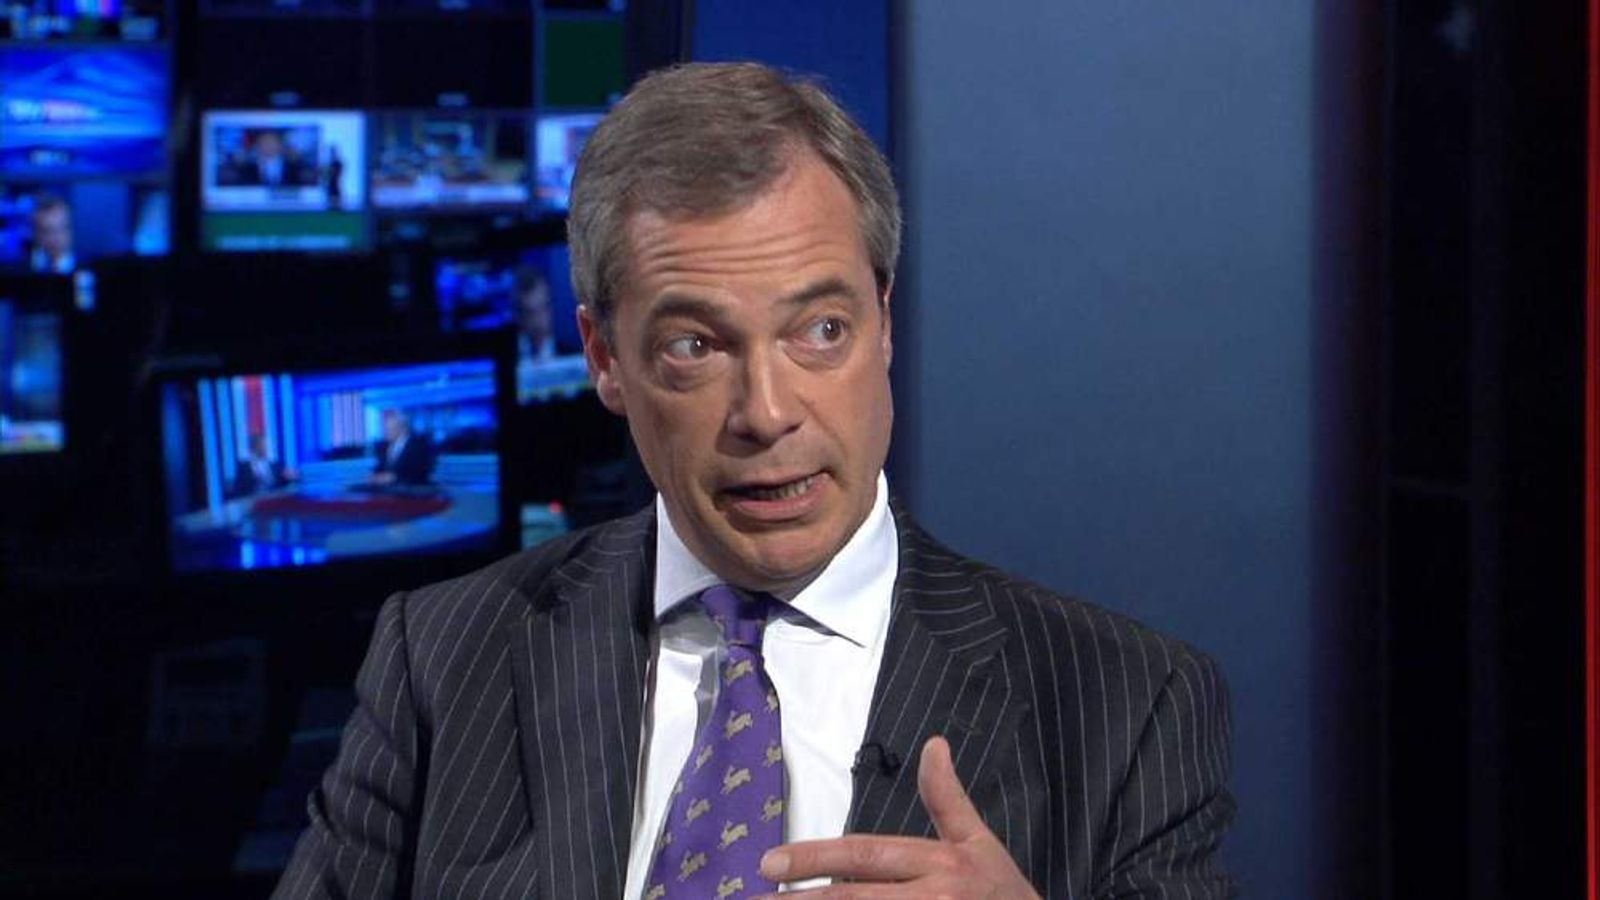 UKIP leader Nigel Farage talking to Adam Boulton